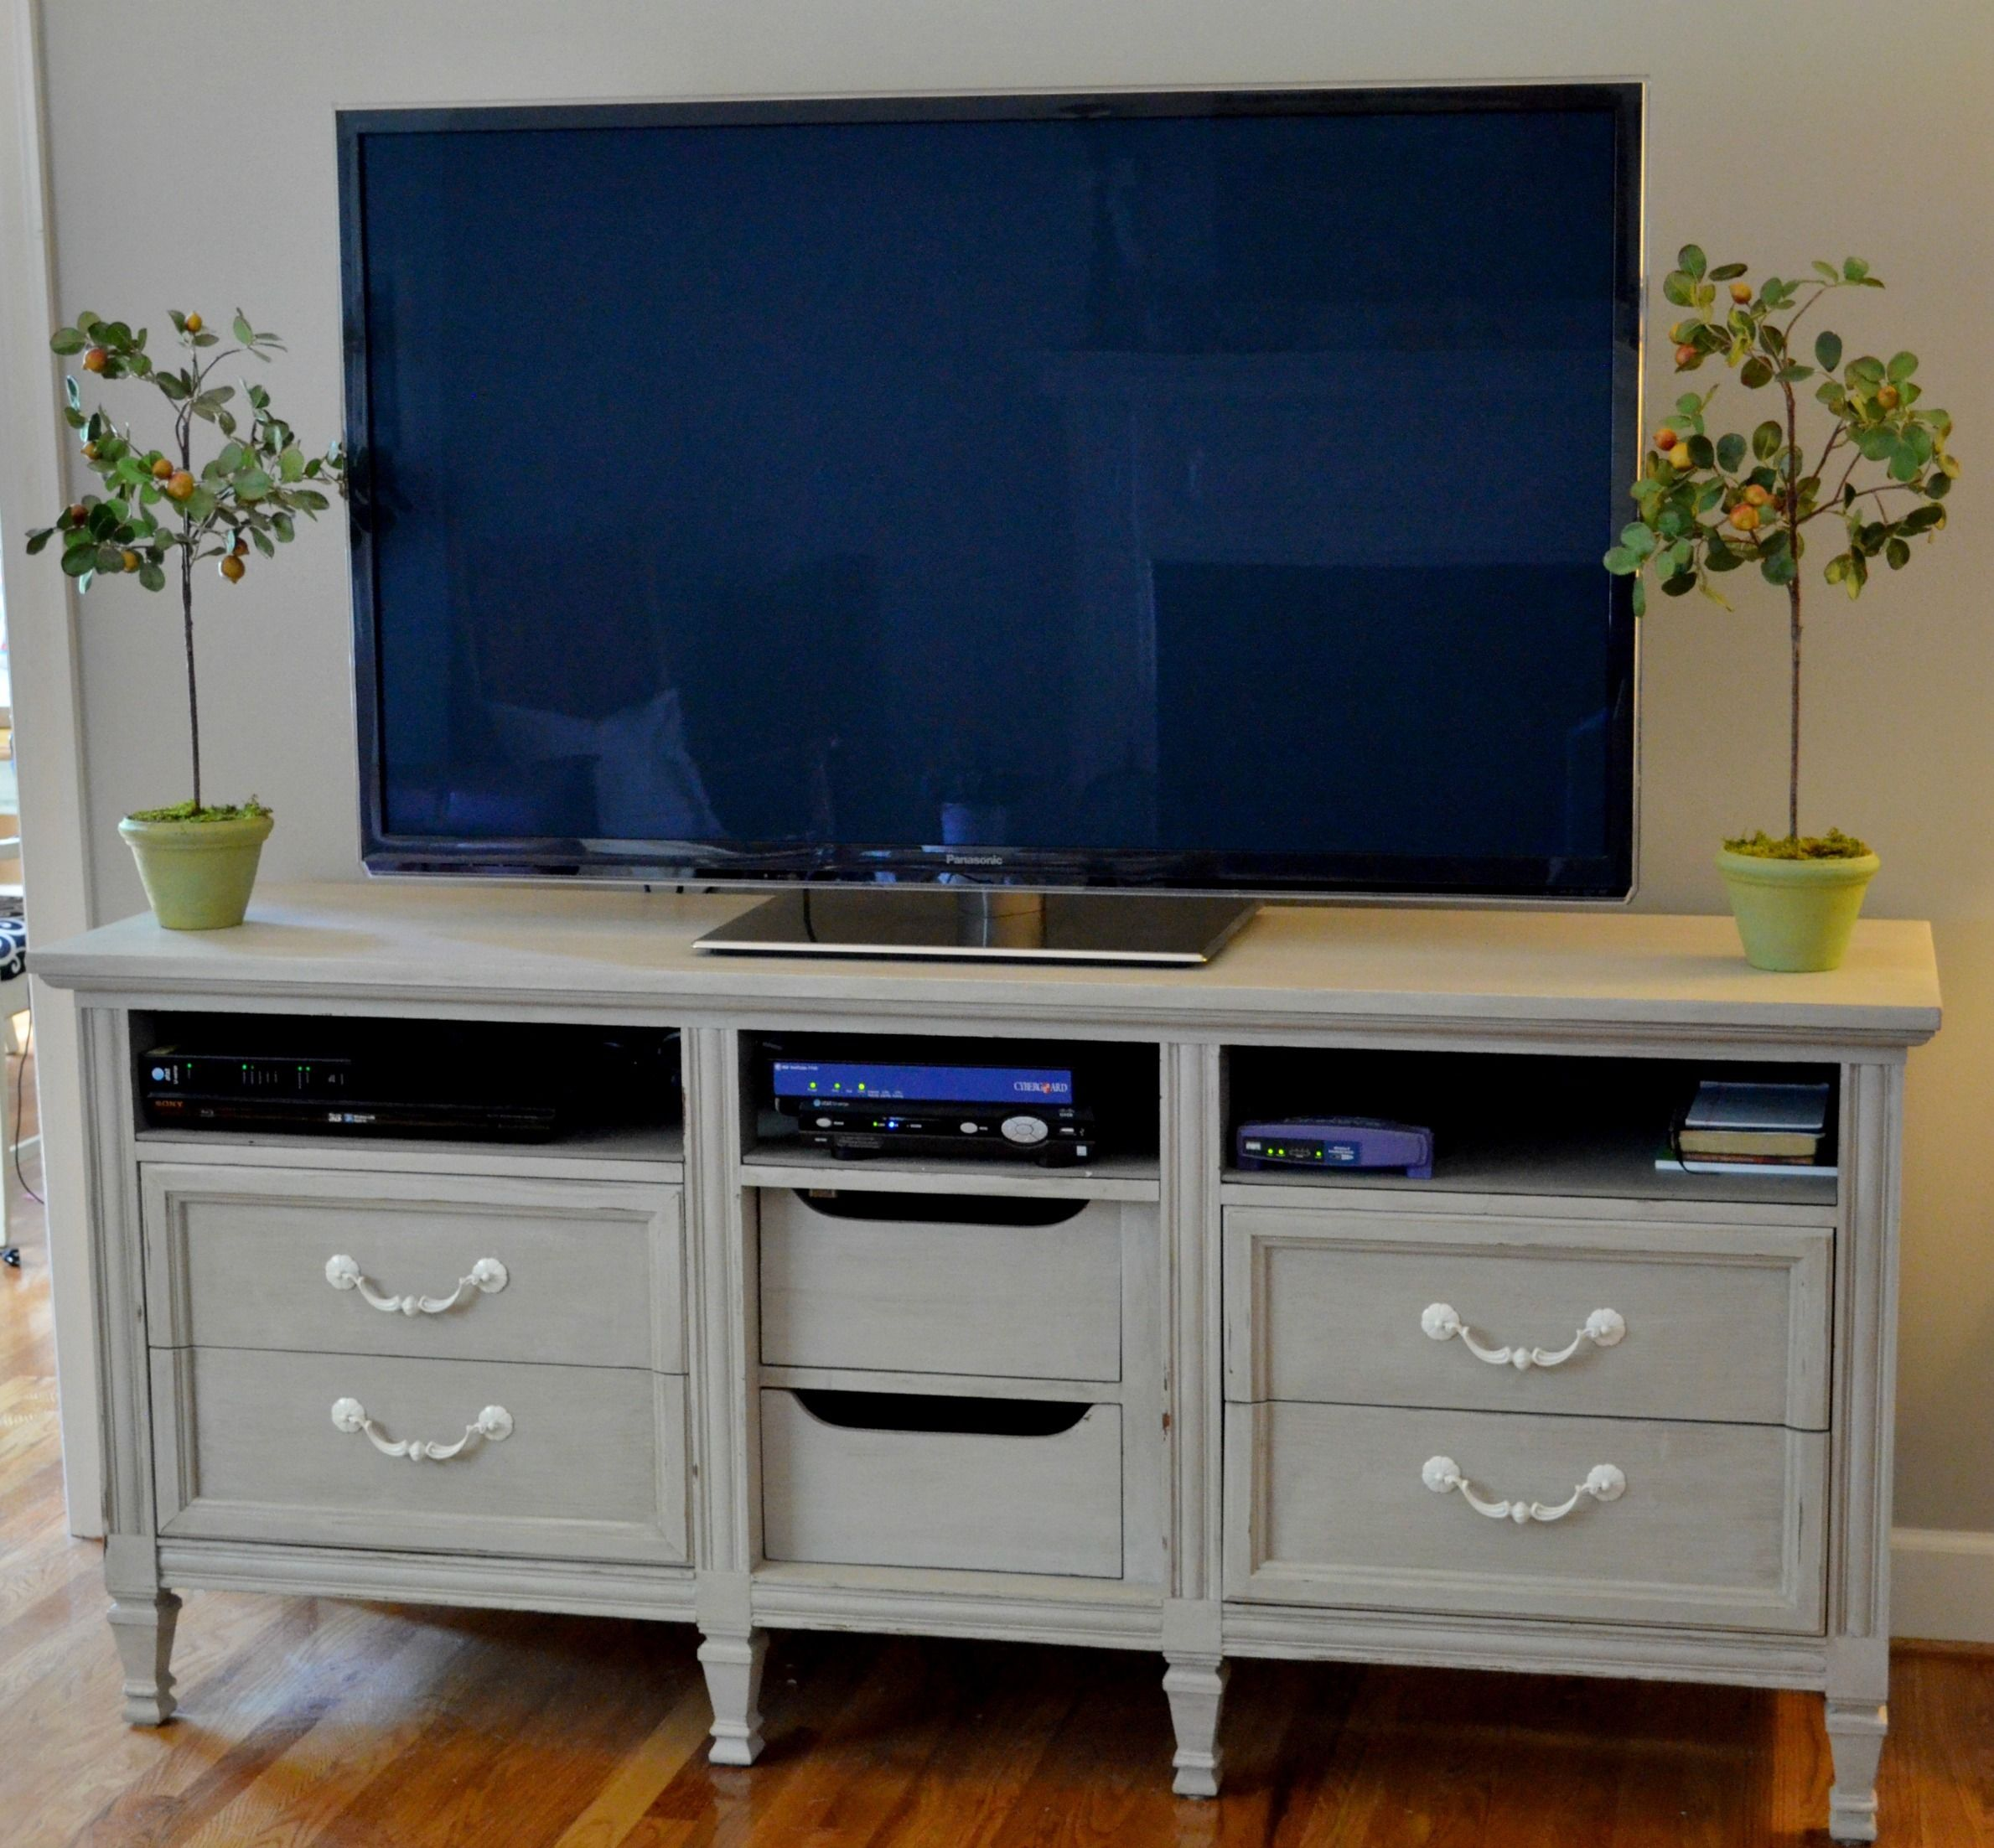 crosley up tall tvs profile tv walmart to bedroom low alexandria com furniture ip stand for